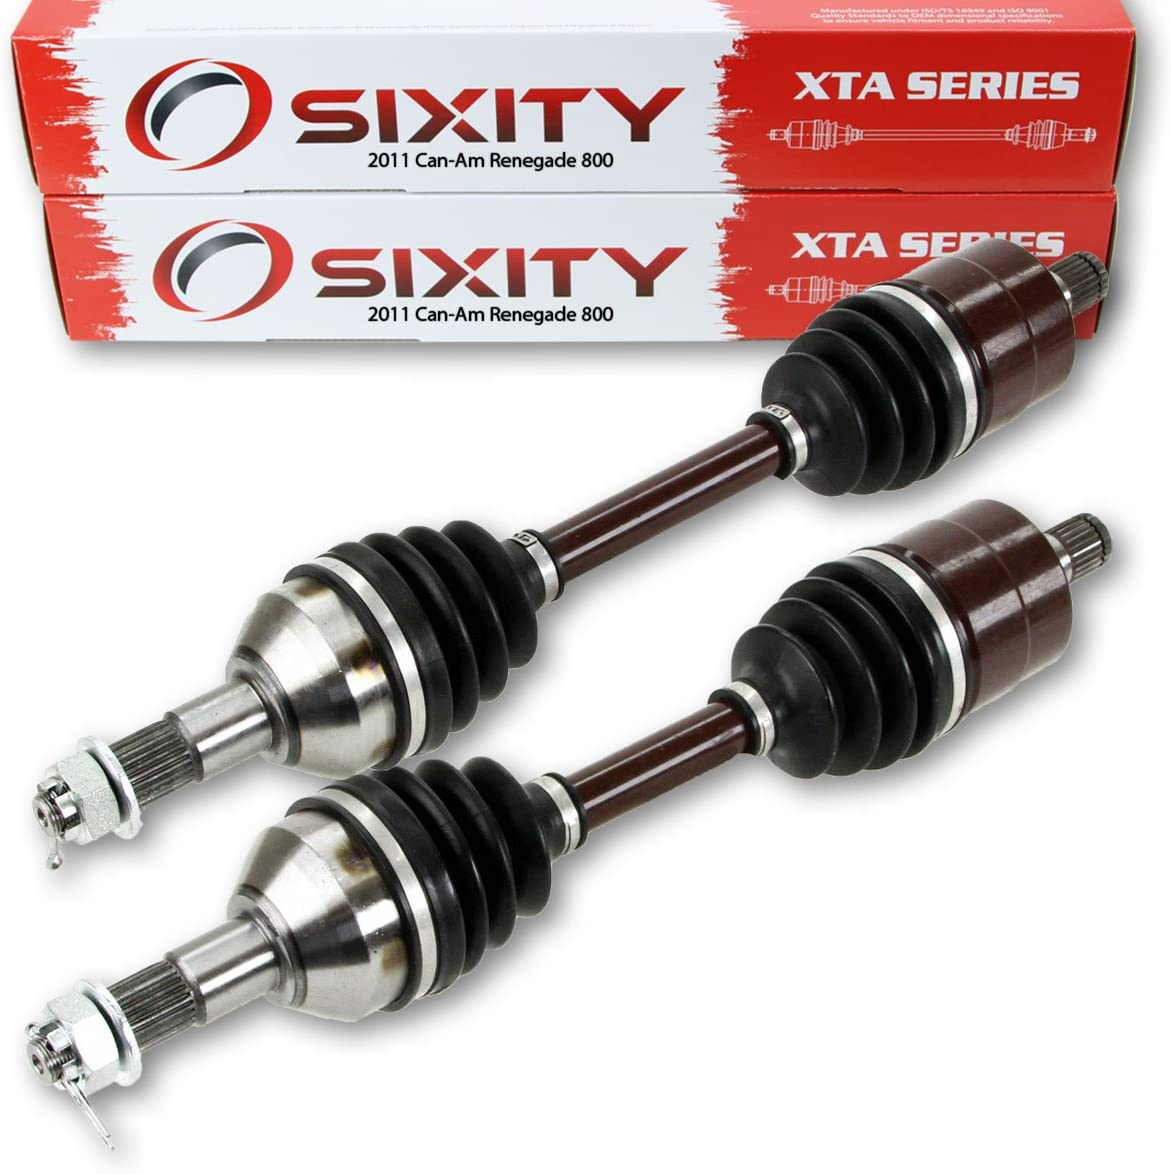 Sixity XT CV Axle for Polaris 1332935 OEM Replacement Front Rear Left Right Driver Passenger Side Back